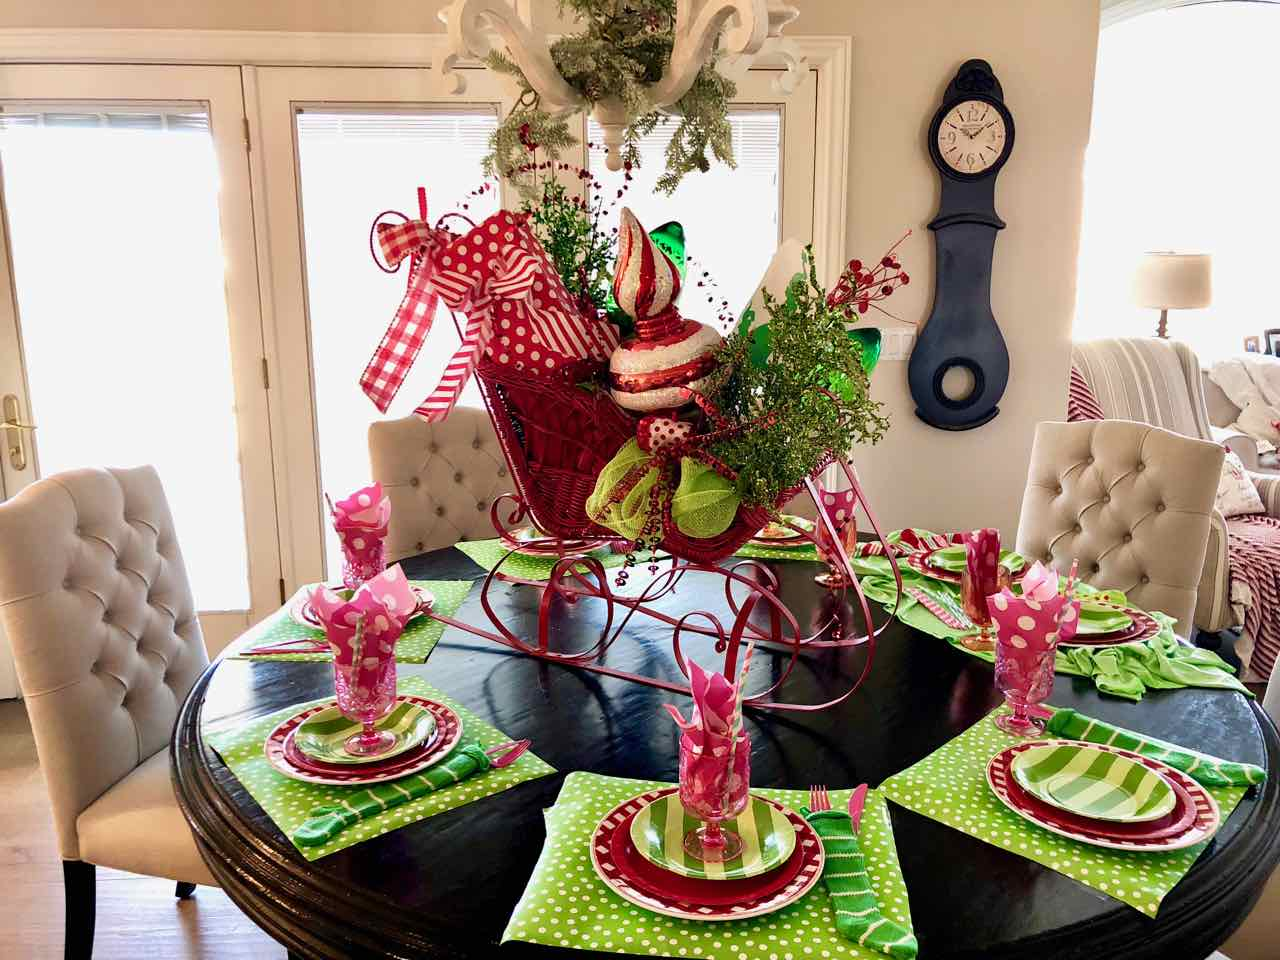 Looking for fun Chritsmas breakfast ideas? Check out this exciting Grinch themed Christmas breakfast! The colors, decor, food, all yell Grinch!